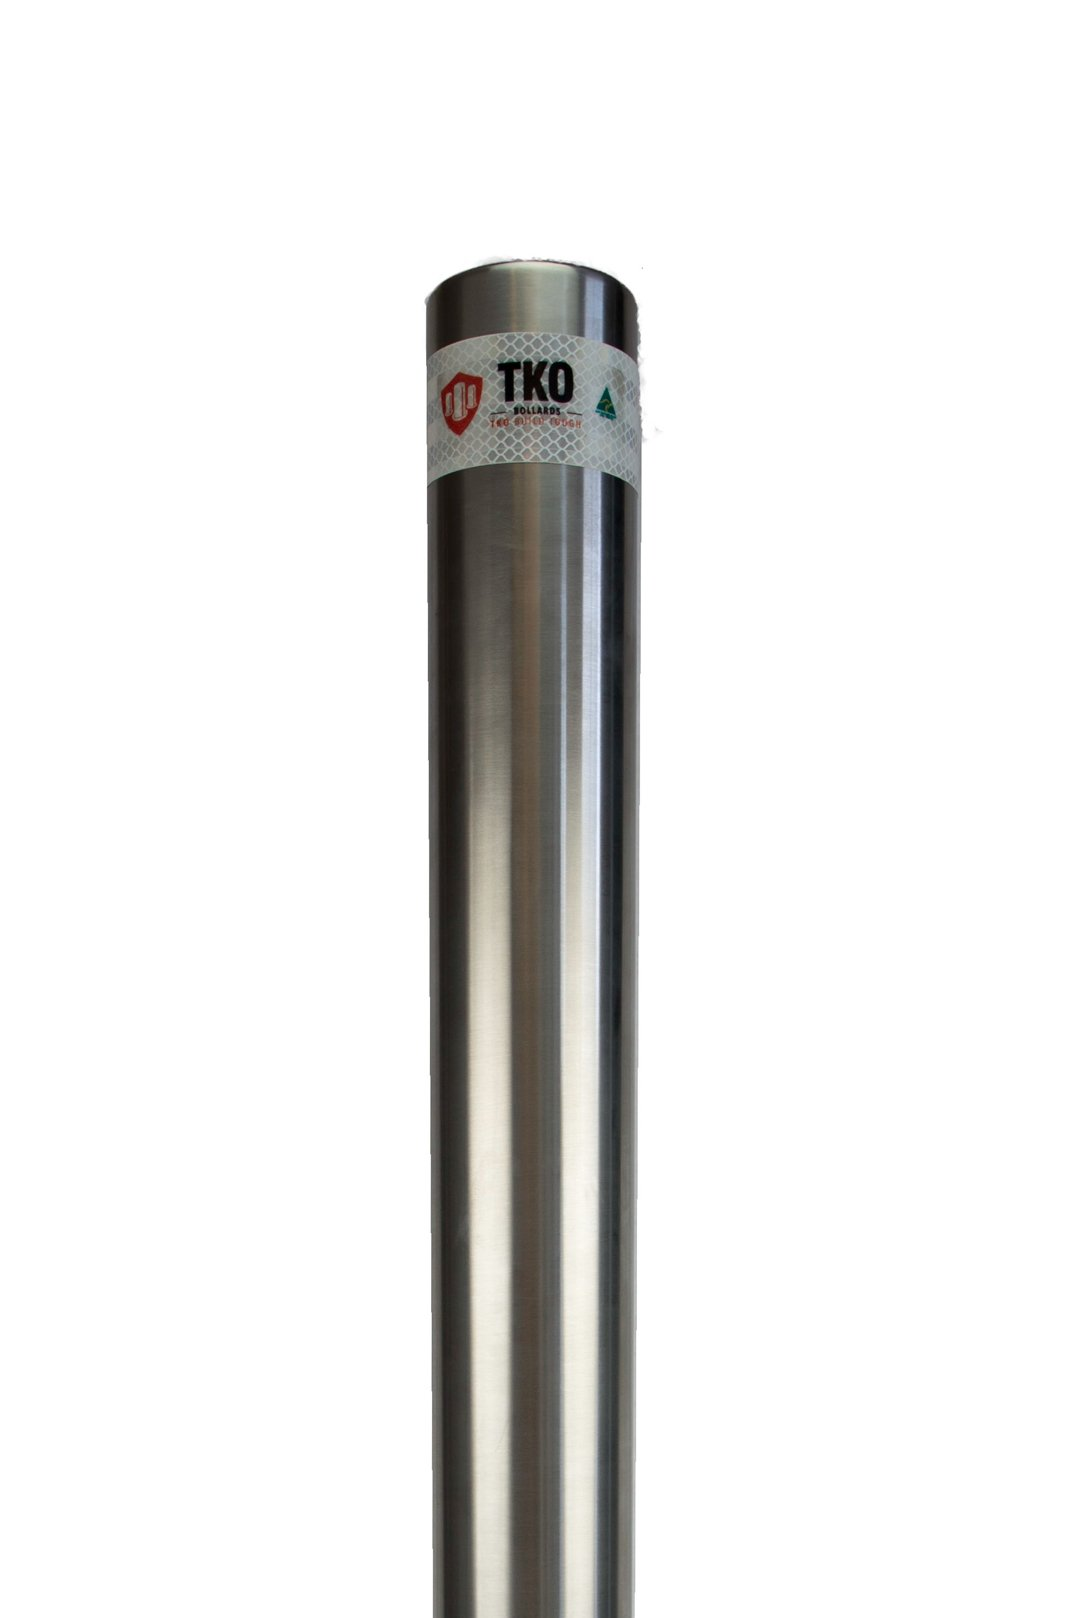 90 OD In-Ground Stainless Steel Bollard - Brisbane bollards